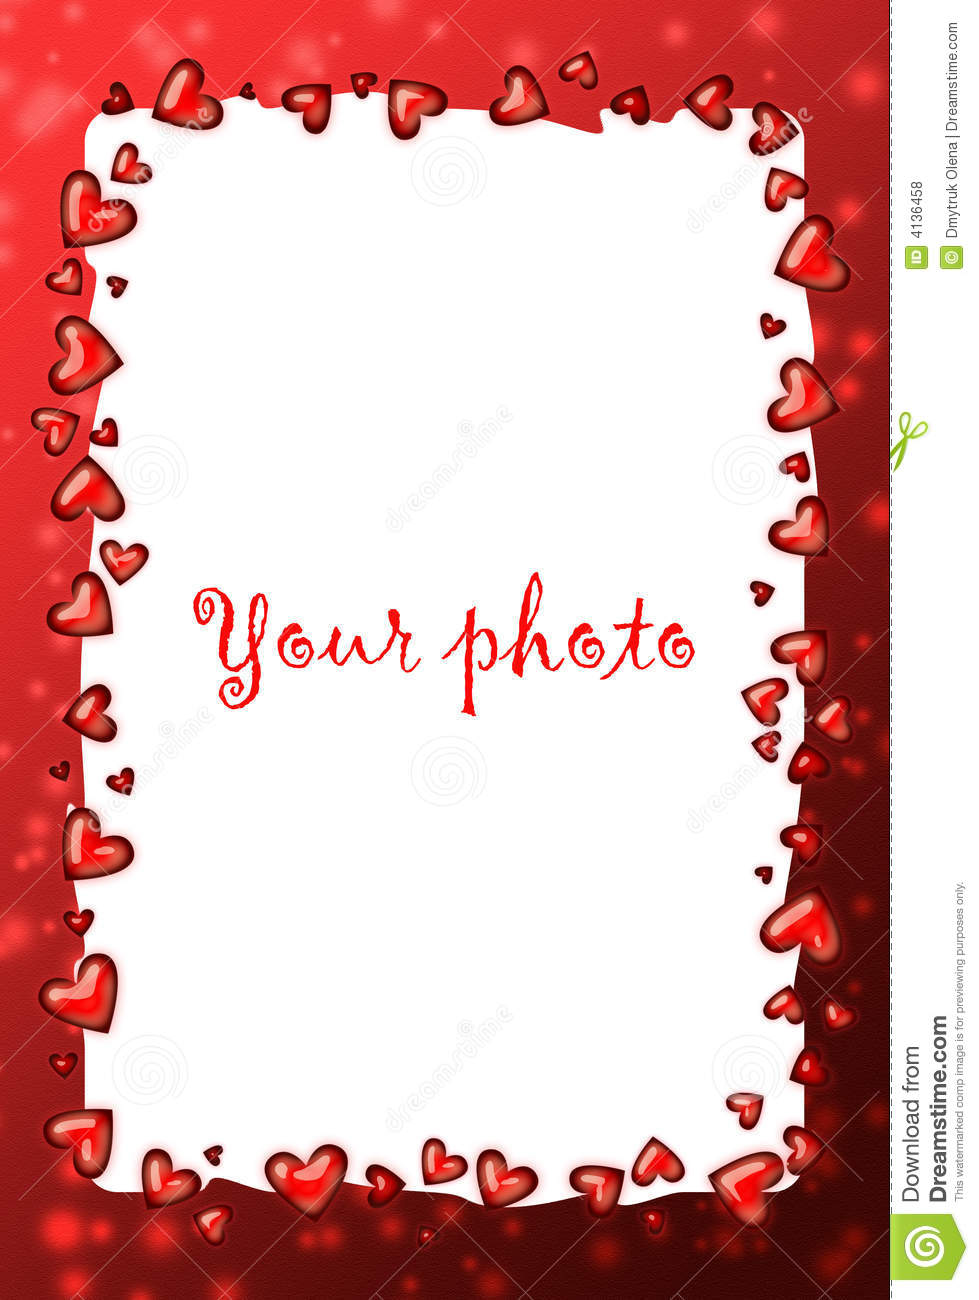 More similar stock images of ` Frame red with heart, valentine frame `